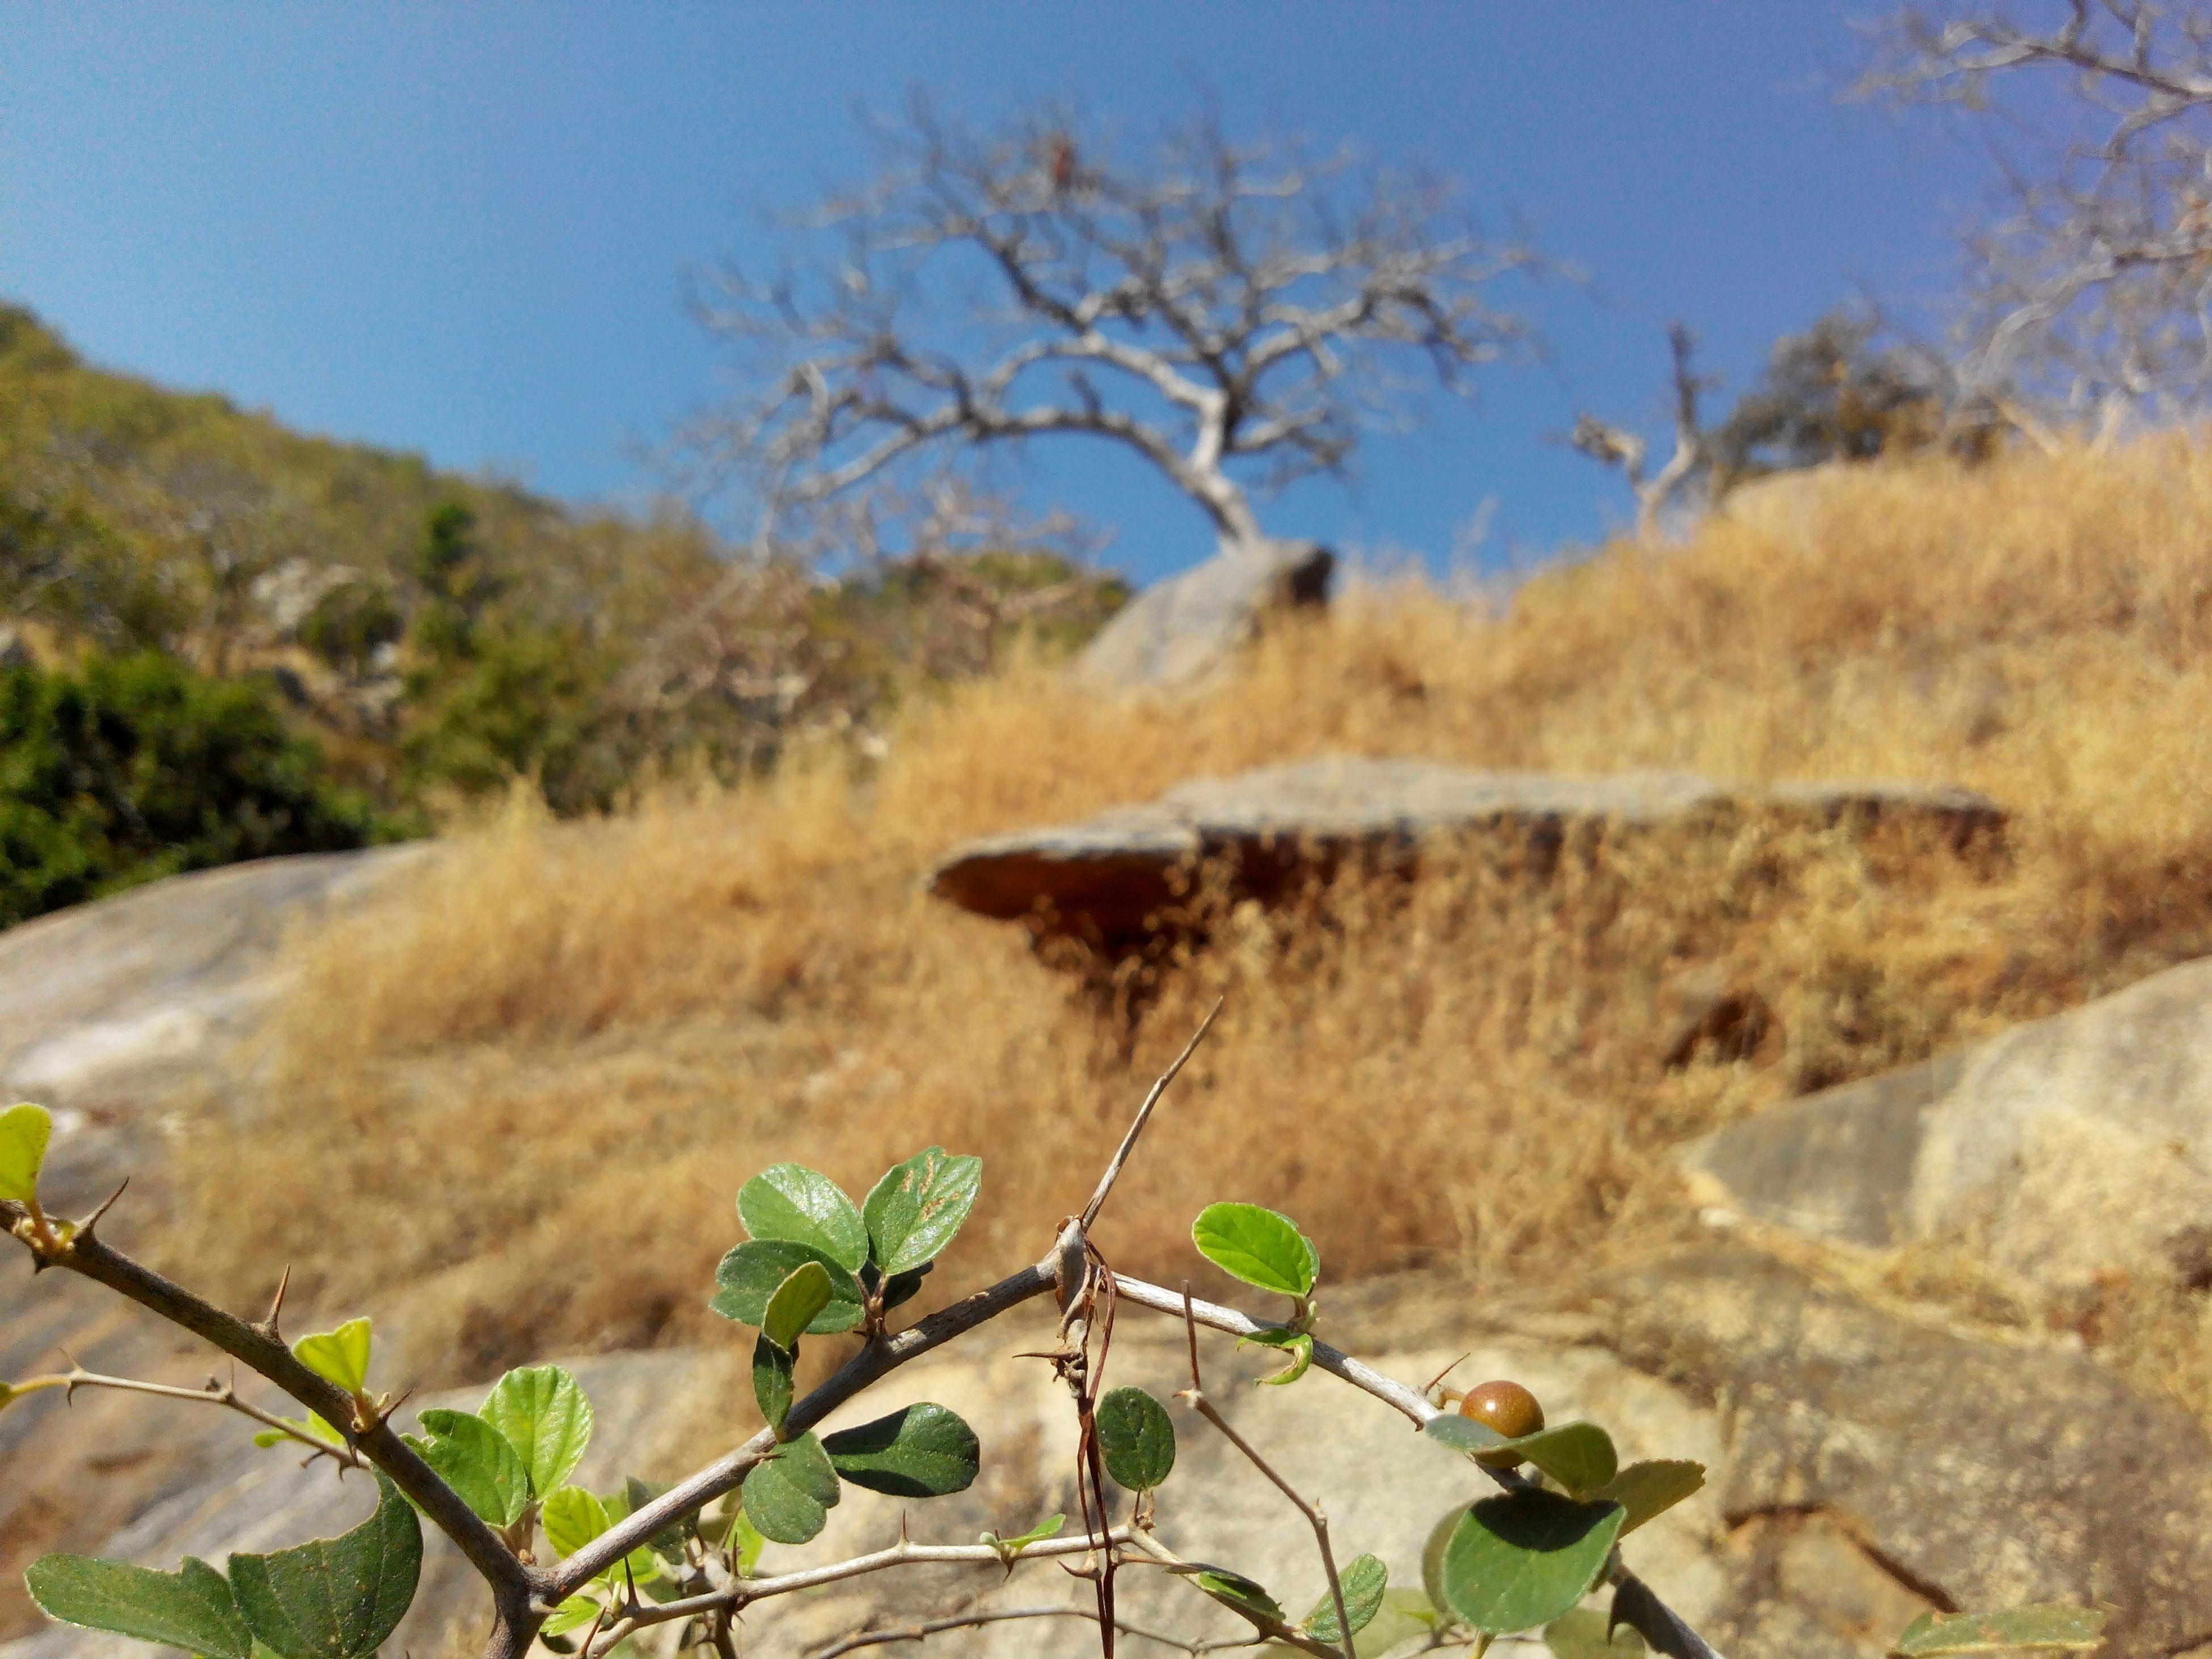 nature, tranquility, branch, plant, tranquil scene, tree, beauty in nature, clear sky, mountain, growth, scenics, focus on foreground, rock - object, landscape, day, outdoors, non-urban scene, close-up, no people, leaf